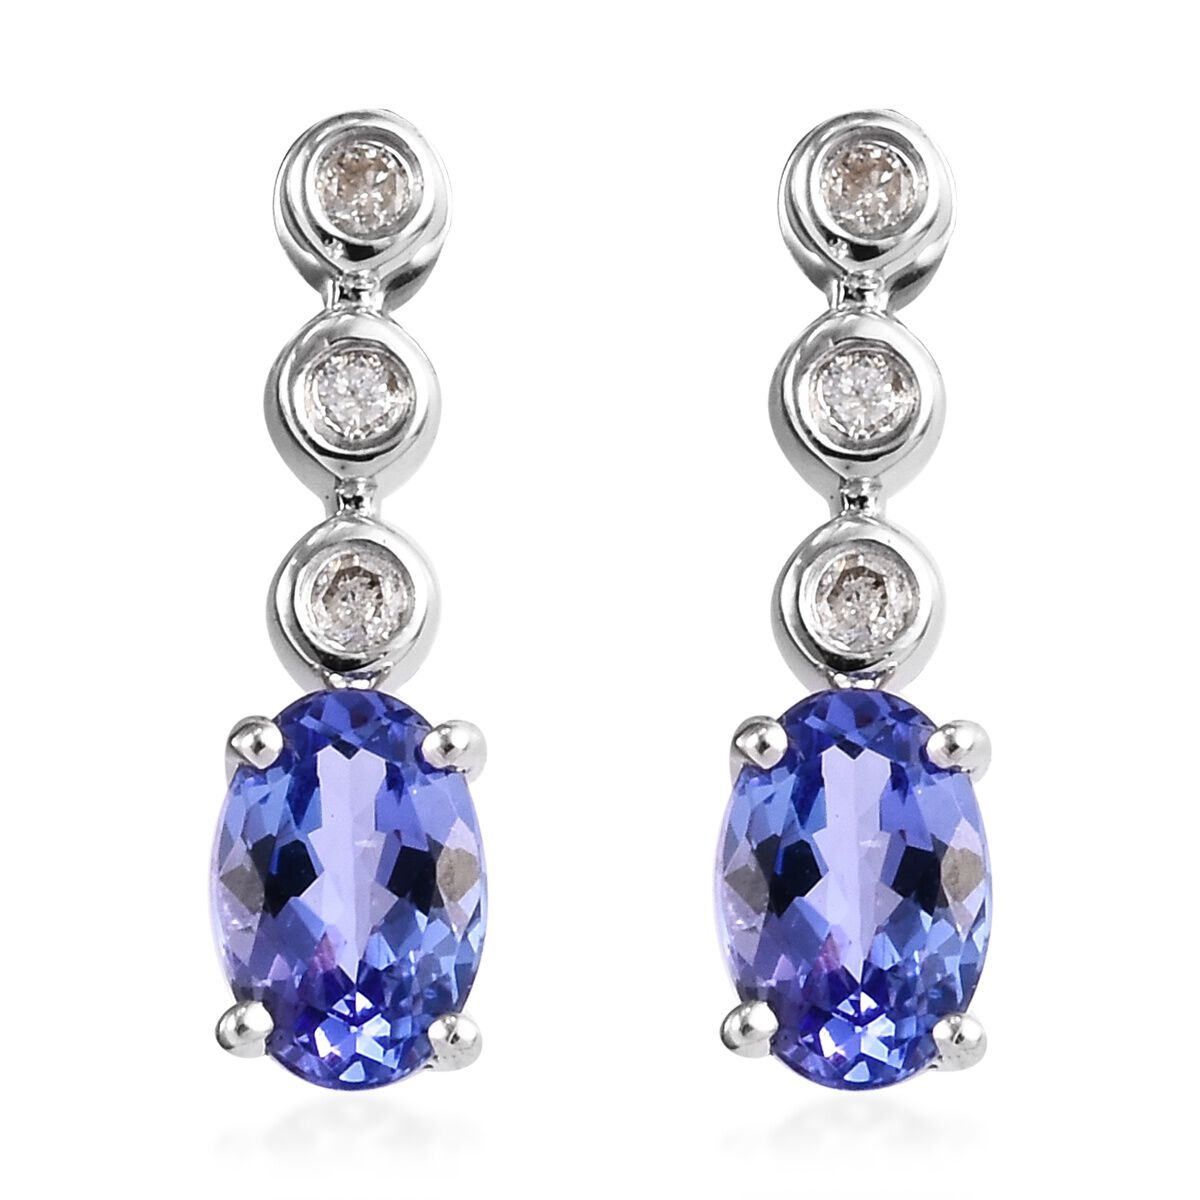 0.98 Ct AA Tanzanite and Diamond Drop Earrings in 9K White